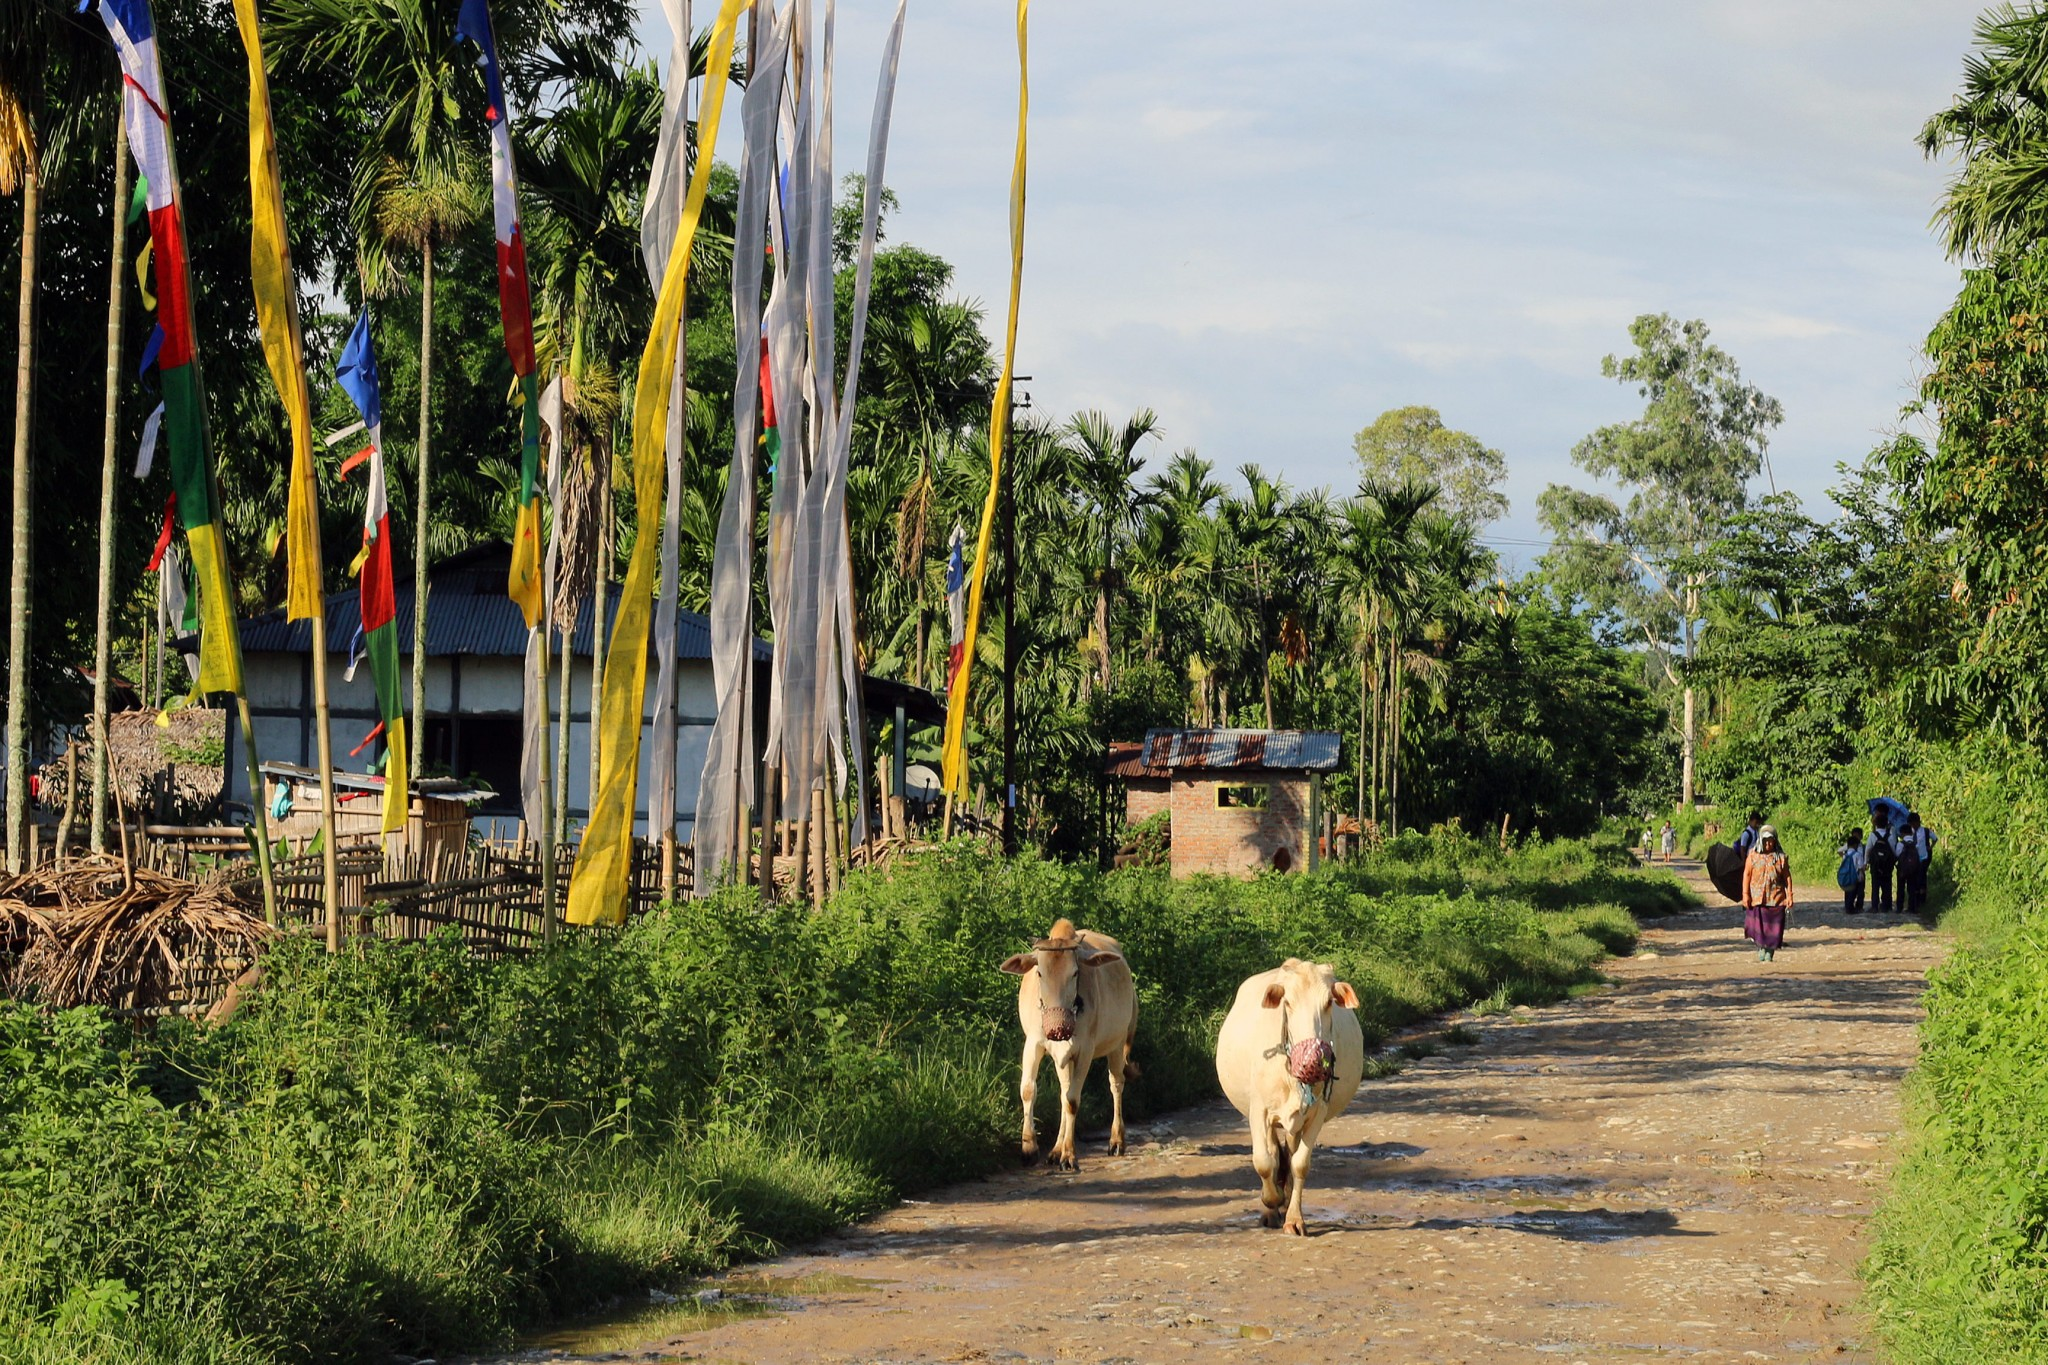 Cows walk along the main road in the Miao settlement.